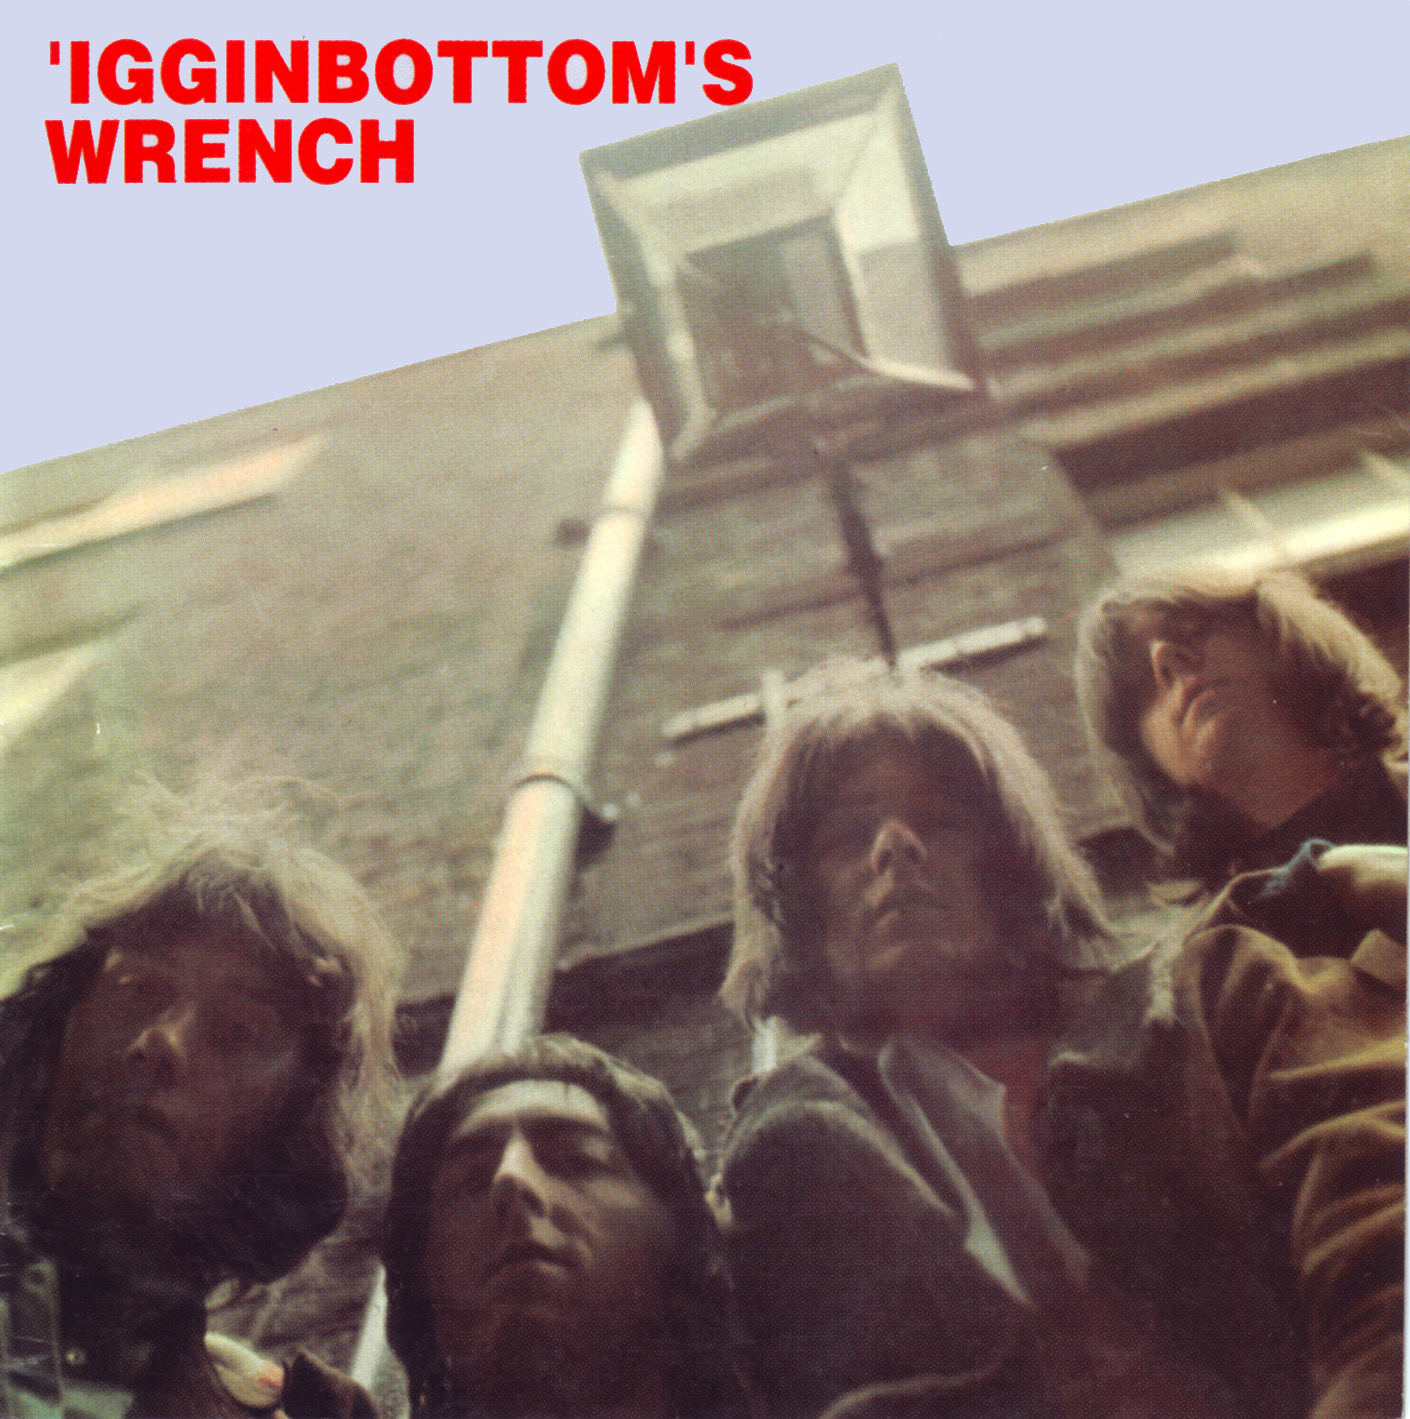 'Igginbottom's Wrench